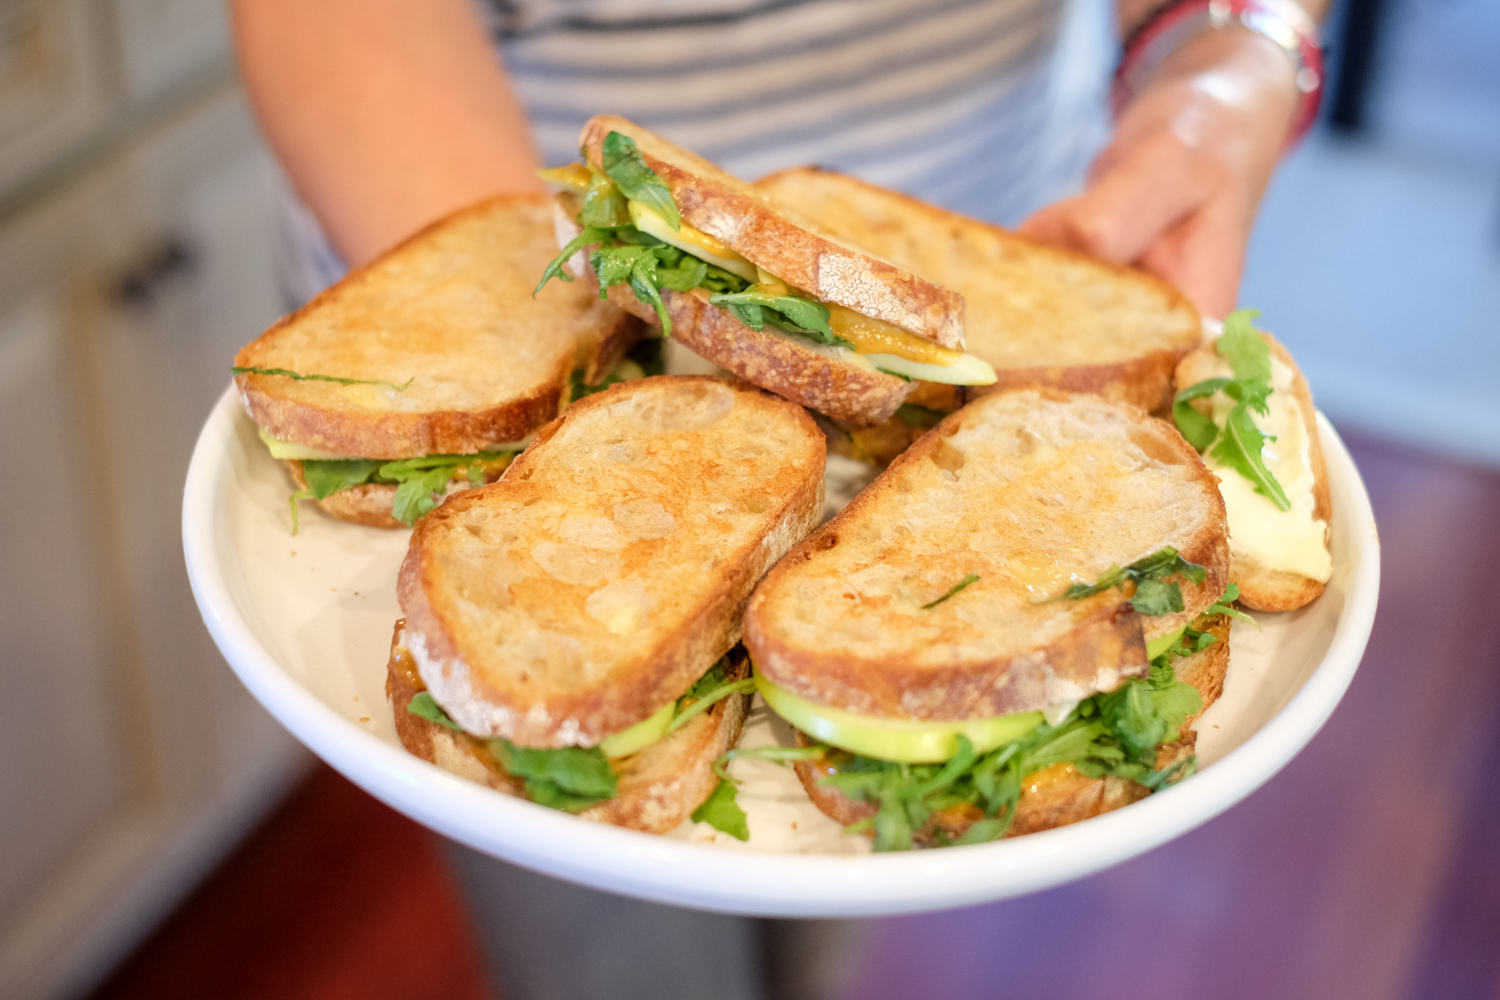 Now if I was a food blogger I would need to hire a professional photographer, like my brother Tom, to keep these pictures rolling every week. And Pinterest would be a top platform. This photo did these sandwiches some justice!